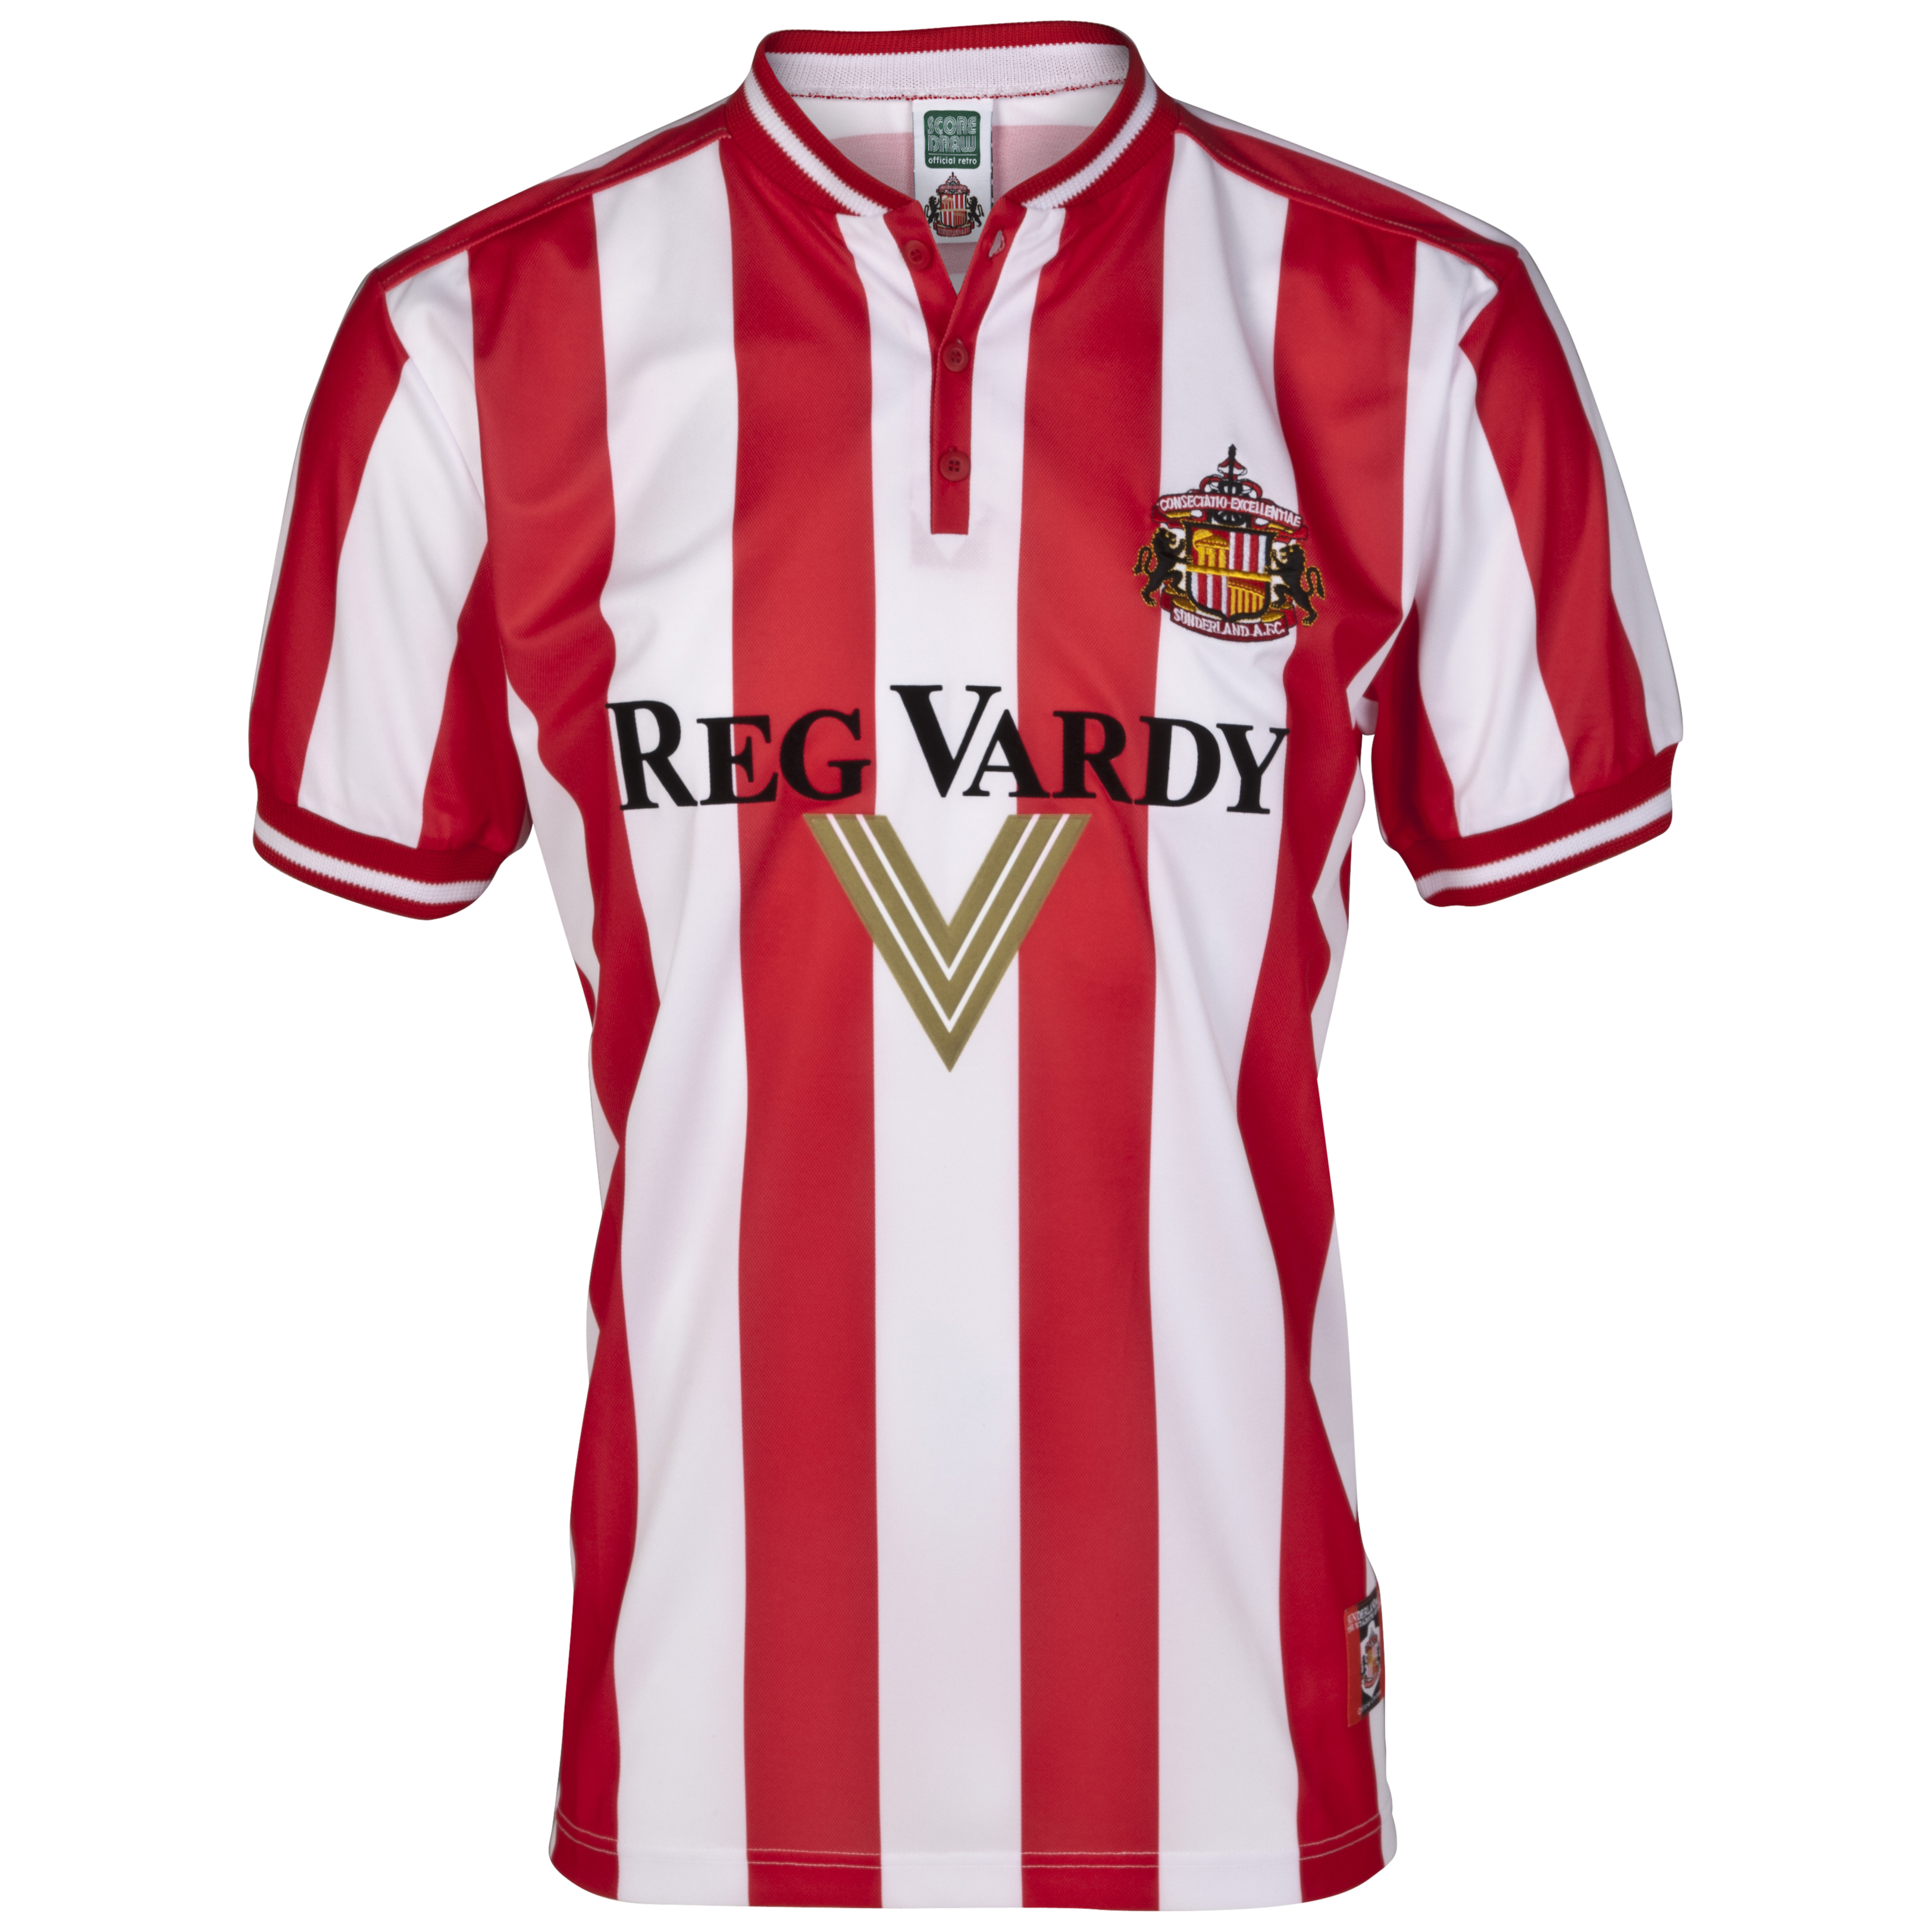 Buy Sunderland 2000 Home Kit